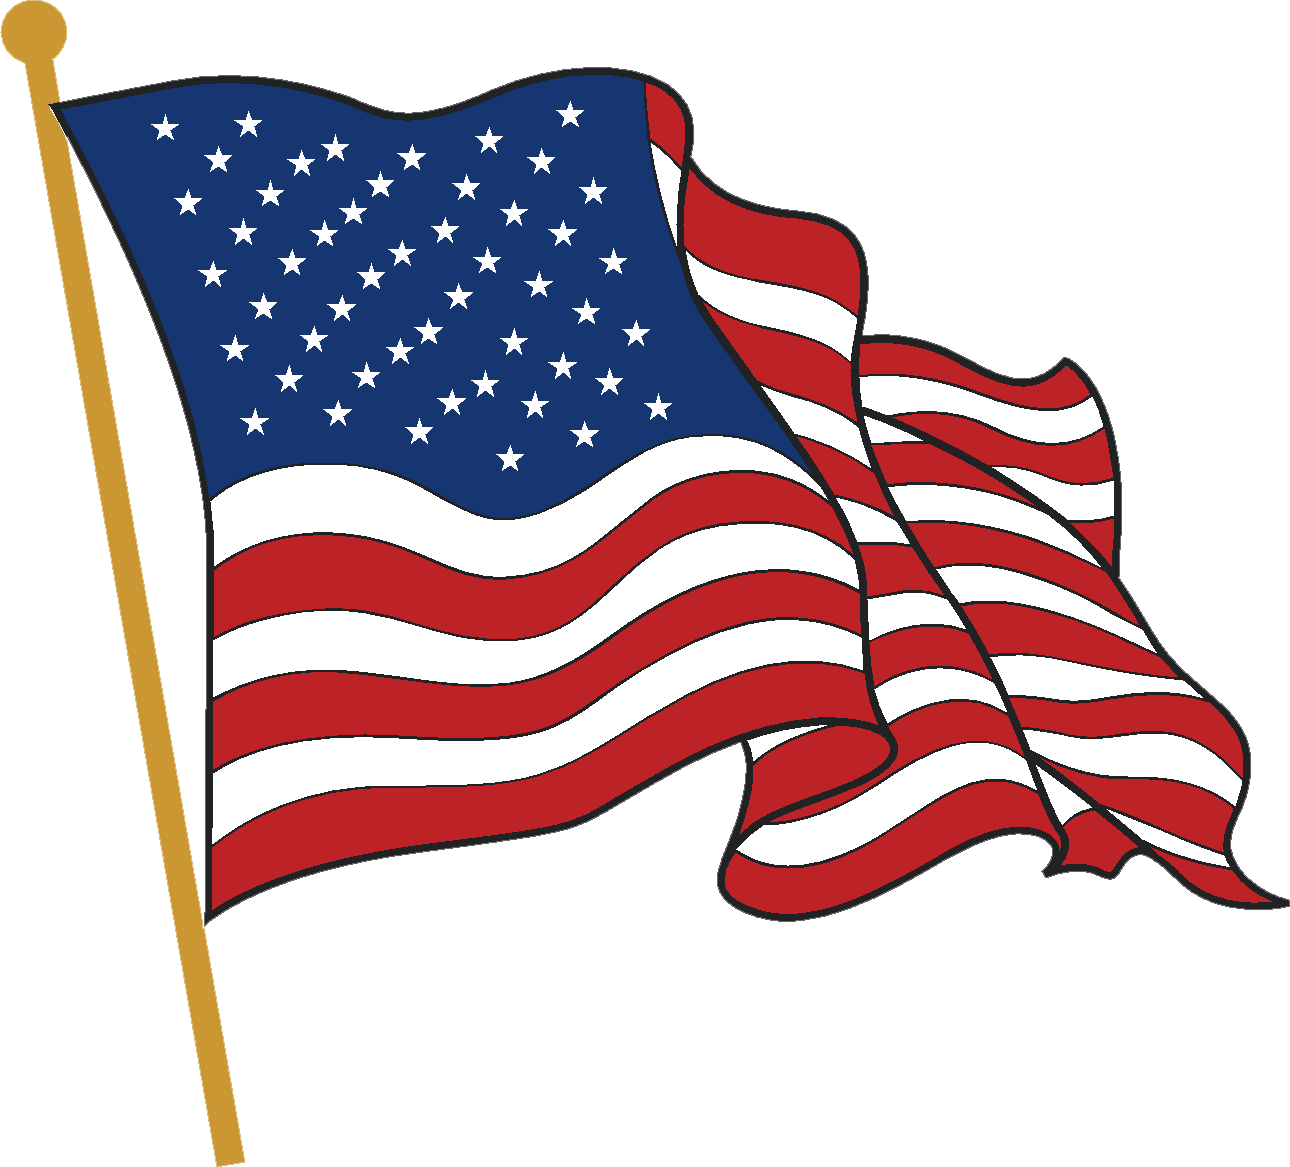 svg transparent stock On emaze . American revolution clipart lexington and concord.